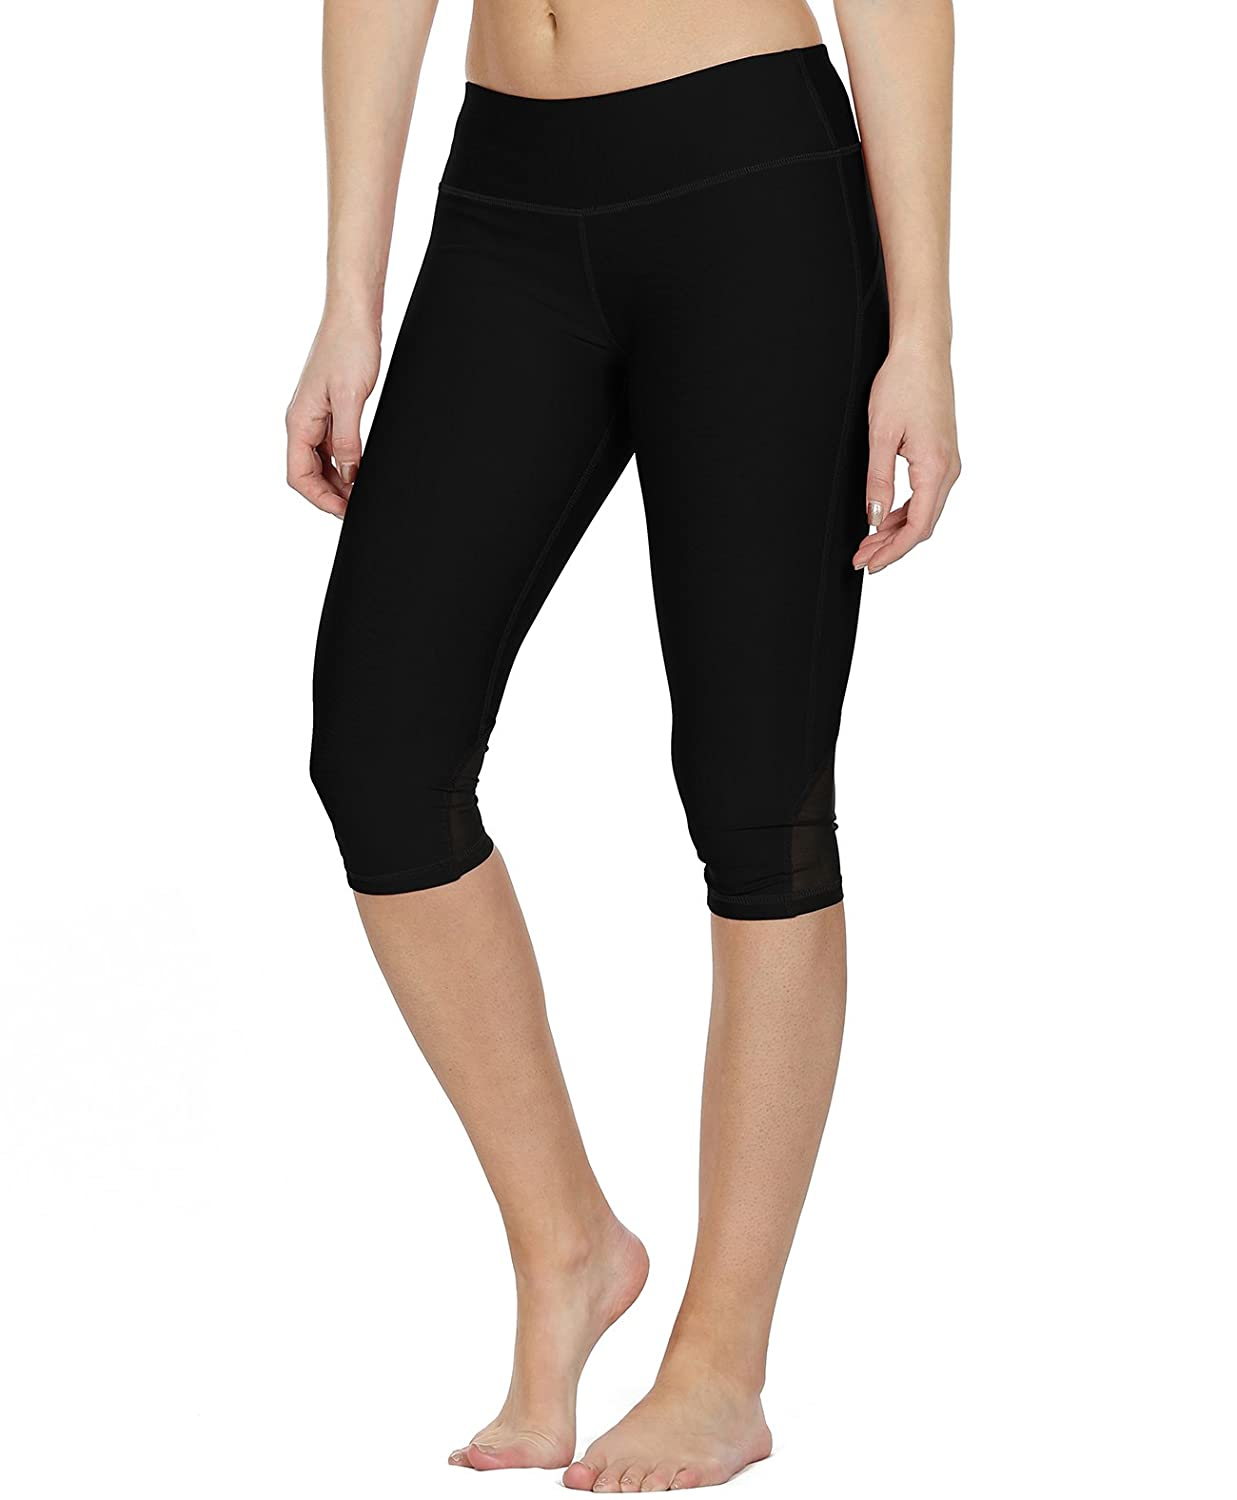 1e2388266814d Amazon.com: icyzone Yoga Pants for Women - High Waisted Workout Leggings,  Activewear Athletic Capris Exercise Tights: Clothing